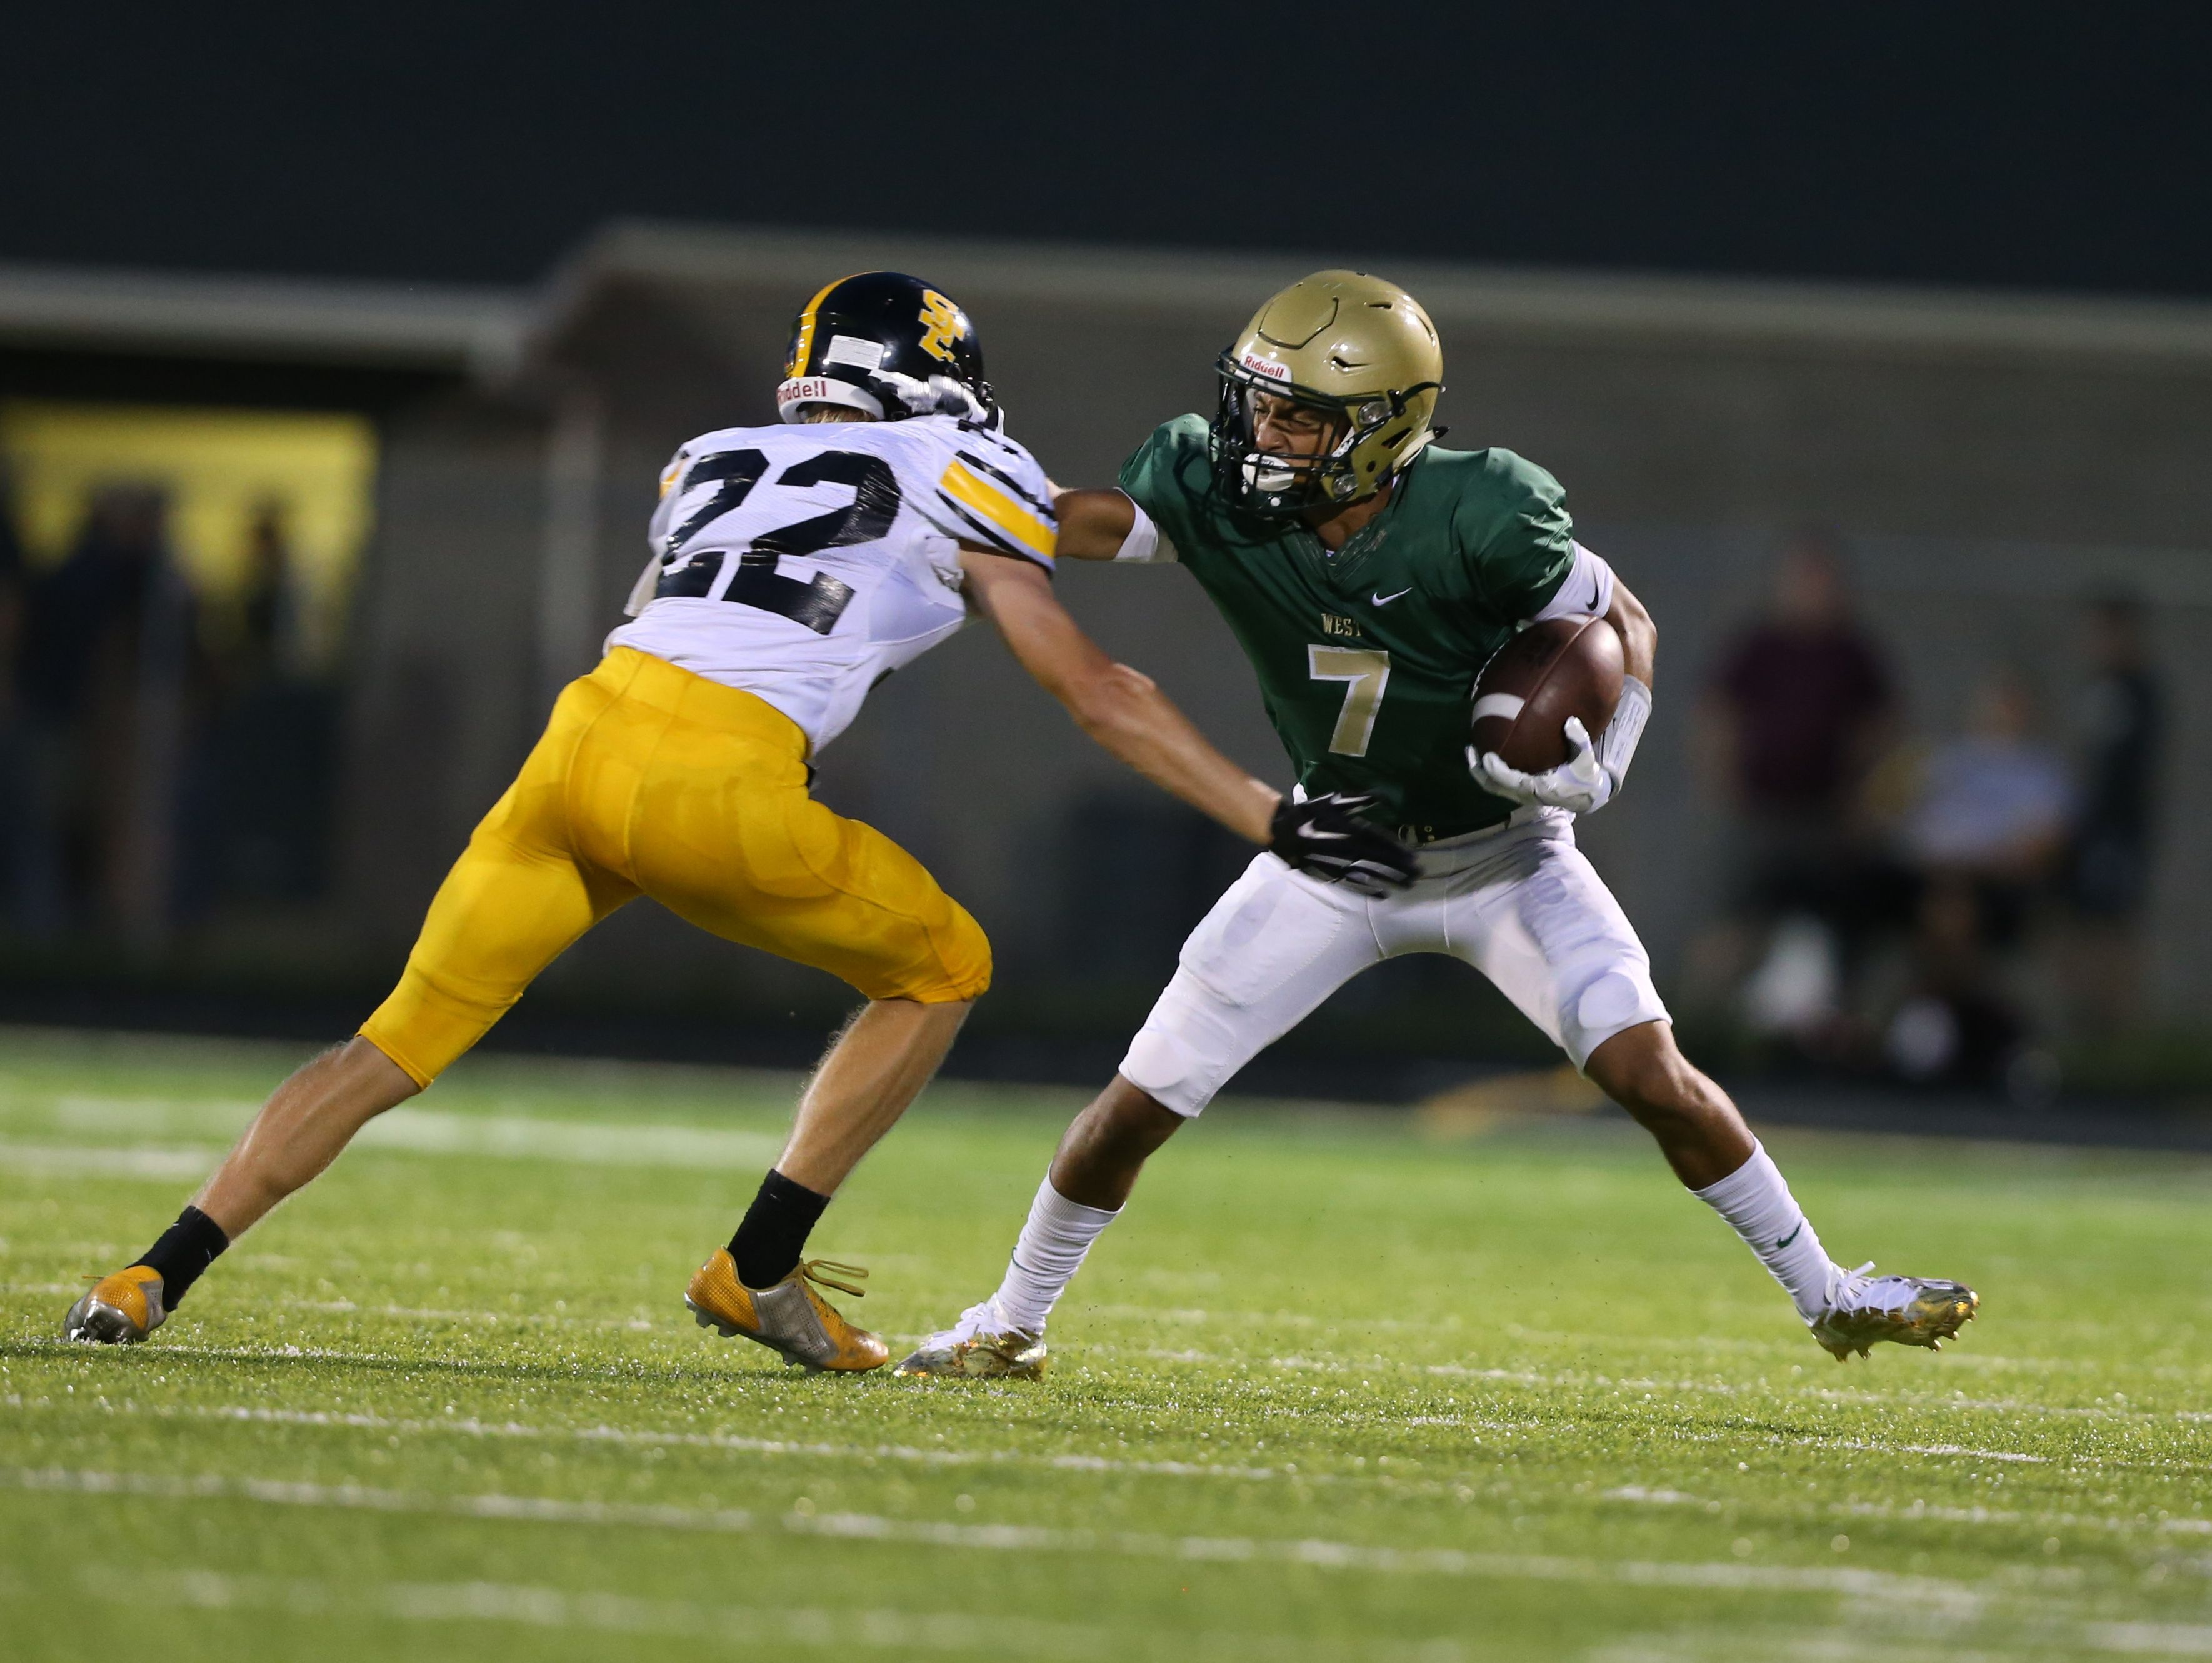 Iowa City West's Traevis Buchanan evades a defender during last week's game against Southeast Polk. The Trojans play Muscatine this Friday.